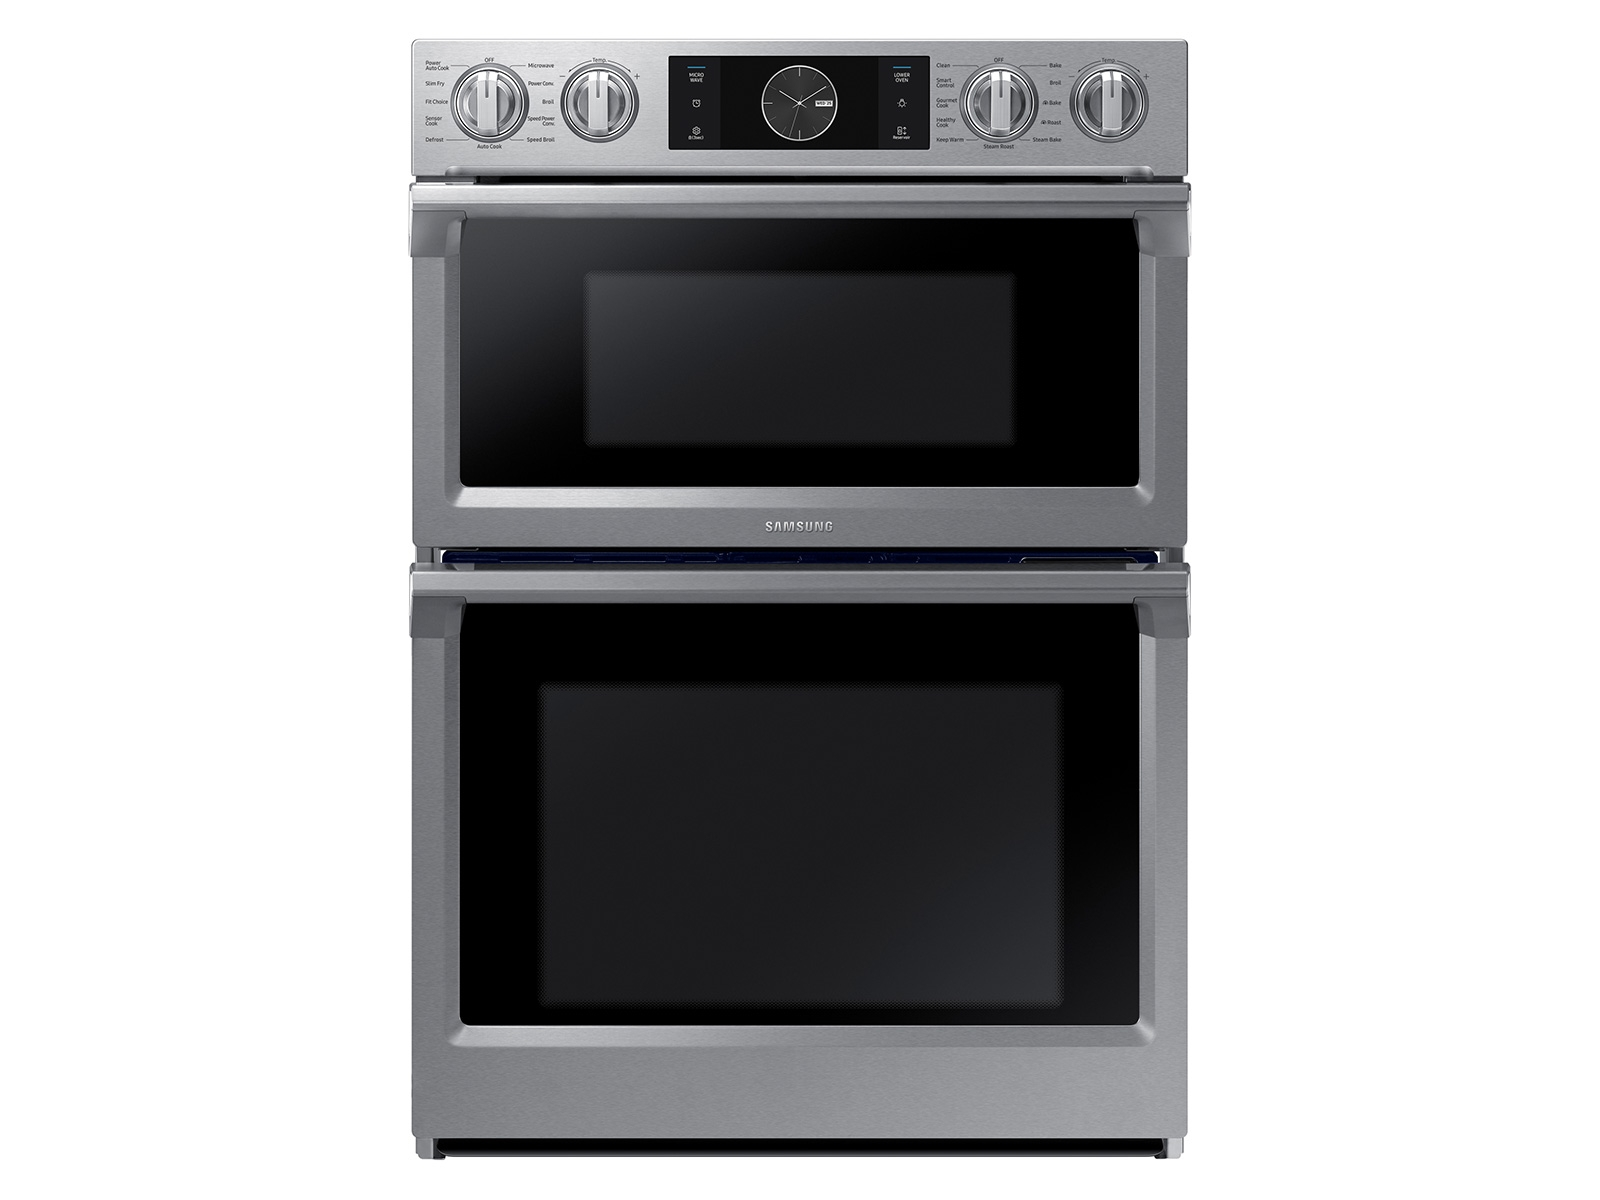 hight resolution of microwave combination wall oven with flex duo nq70m7770 owner microwave combination wall oven